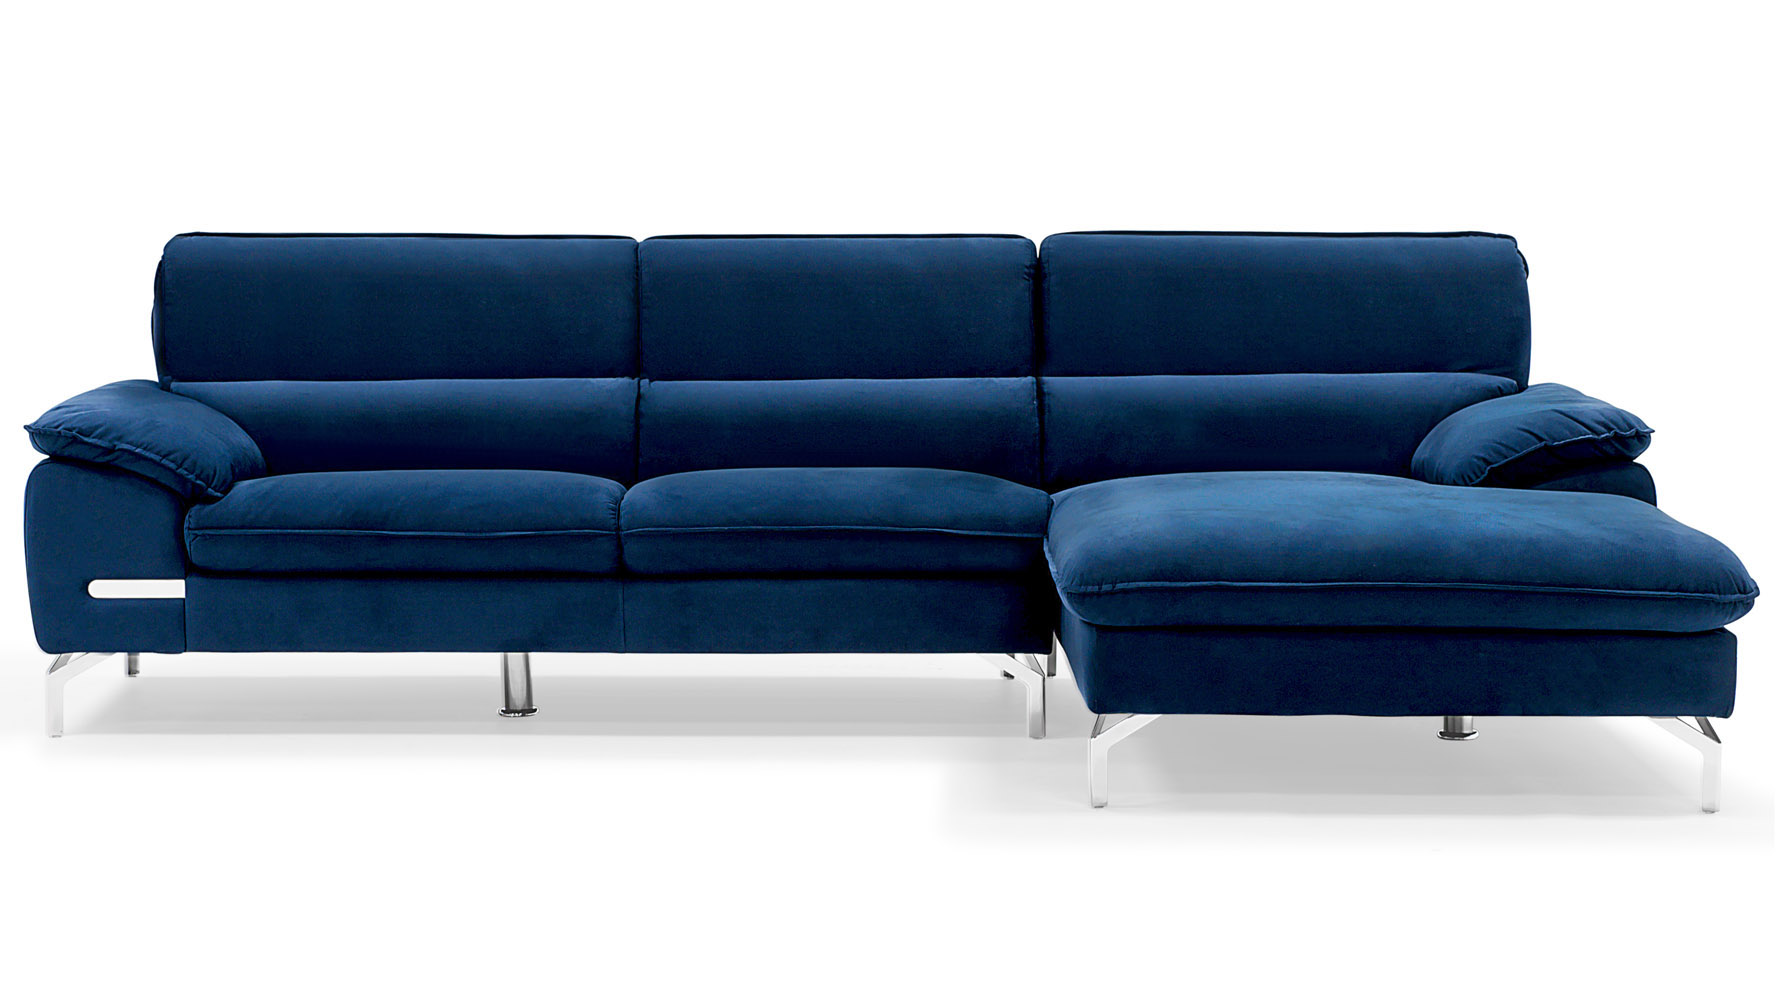 Top Sapphire Blue Sectional Set with Chaise | Zuri Furniture PA74